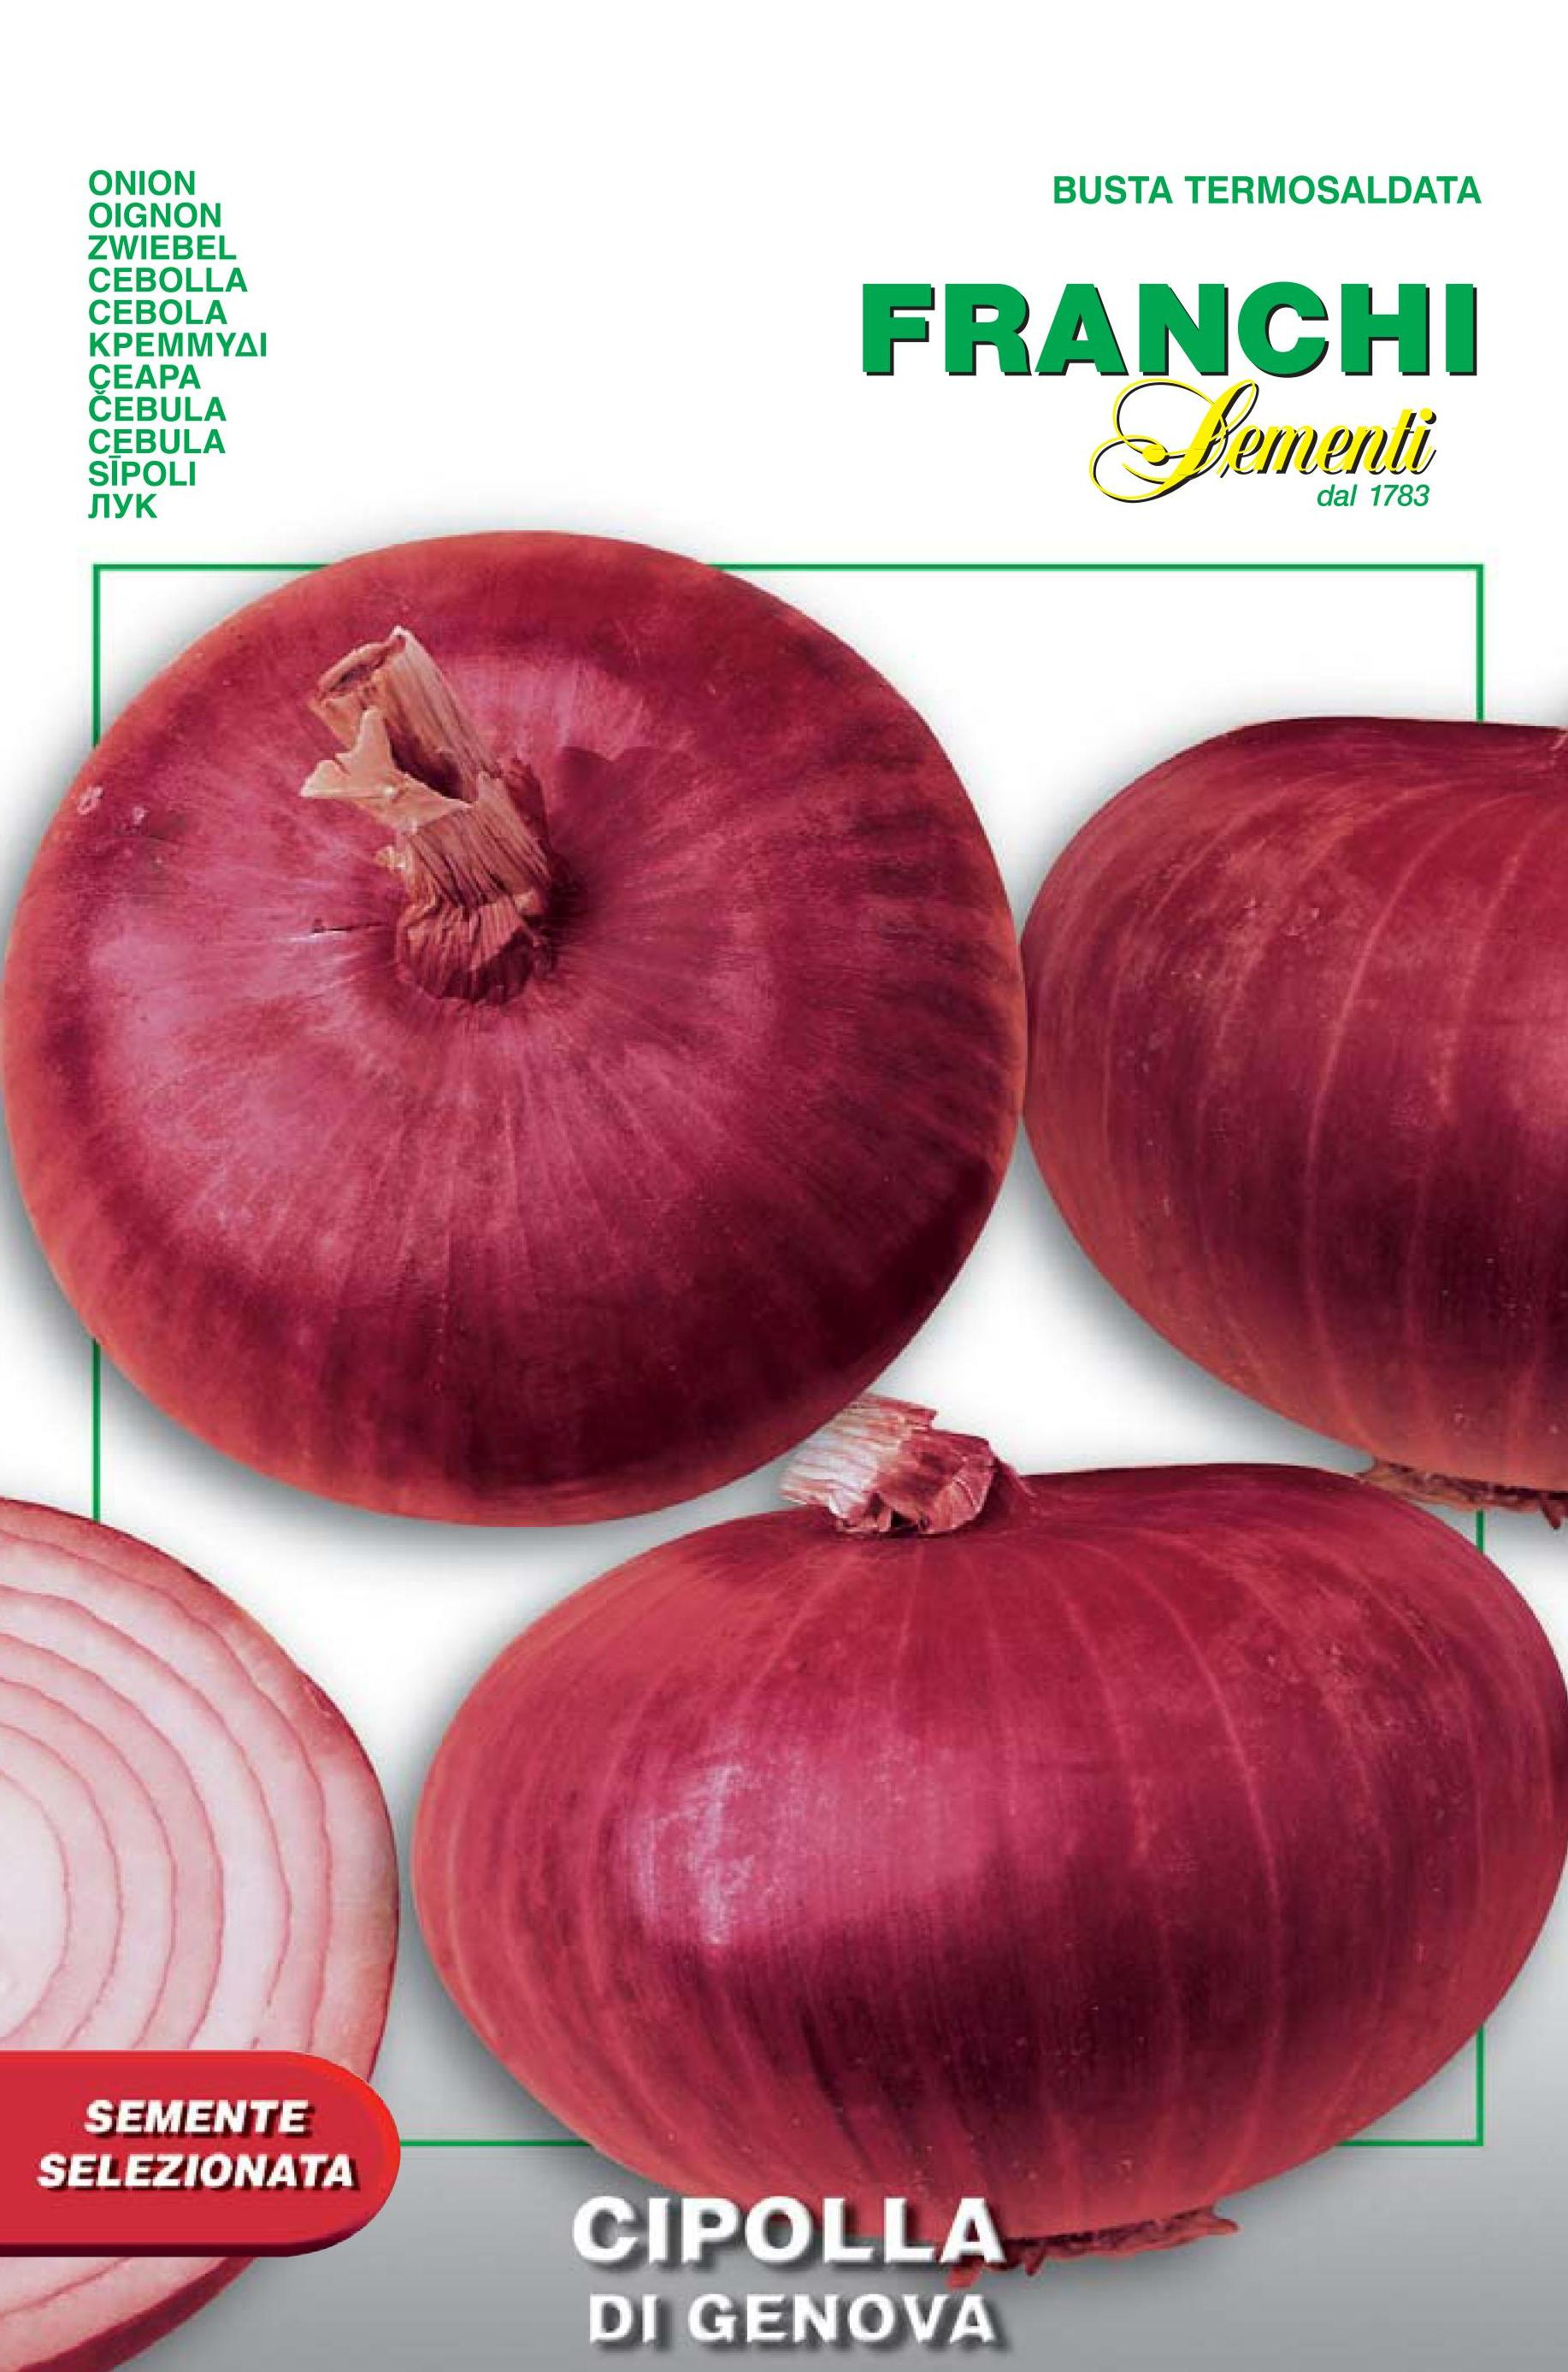 Red Onion Of Genova - Endangered variety* (A) Allium cepa L.